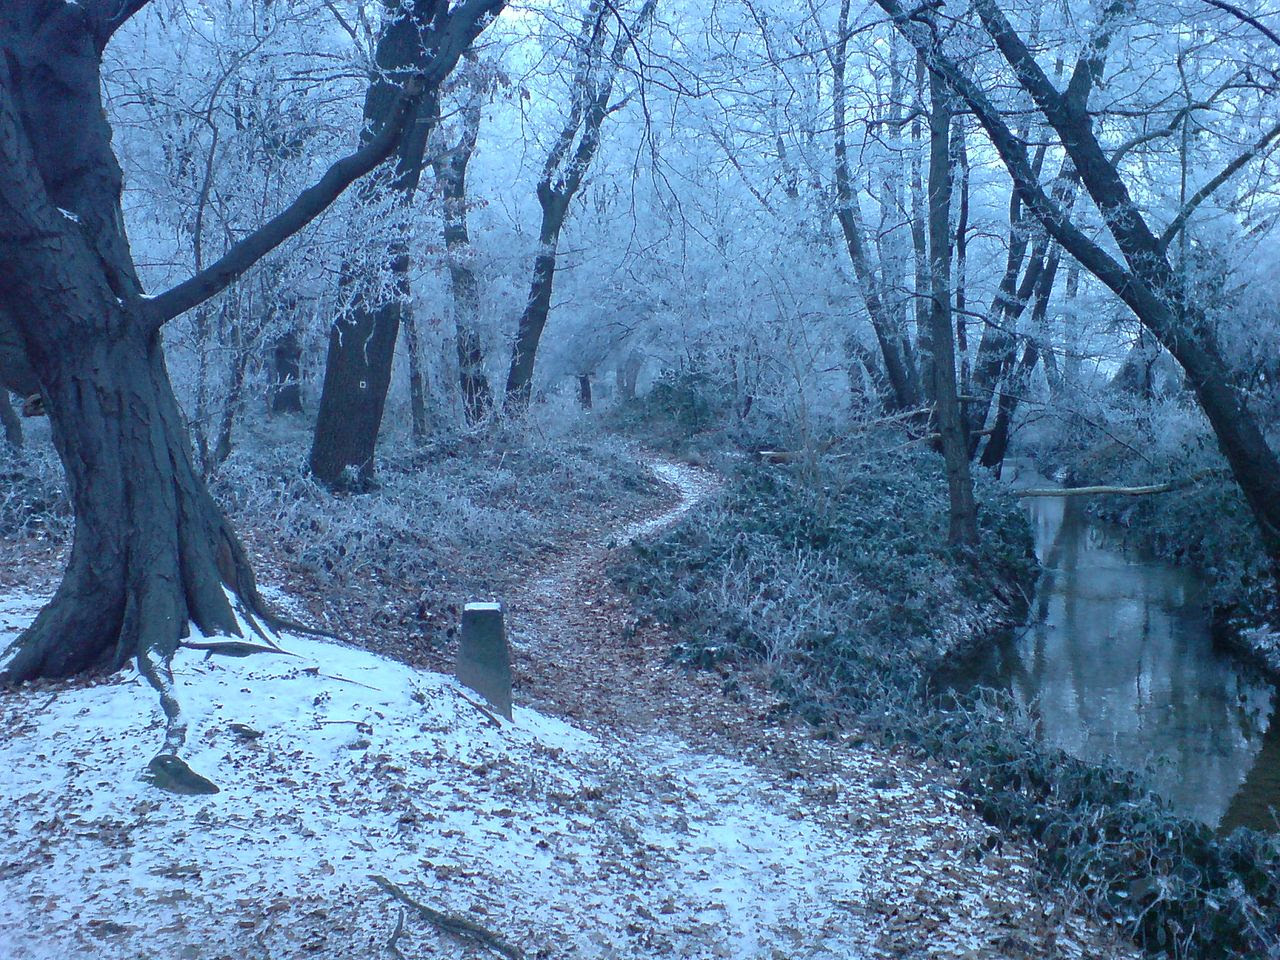 http://upload.wikimedia.org/wikipedia/commons/thumb/9/92/Winter_Forest_Near_Erzhausen_II.jpg/1280px-Winter_Forest_Near_Erzhausen_II.jpg